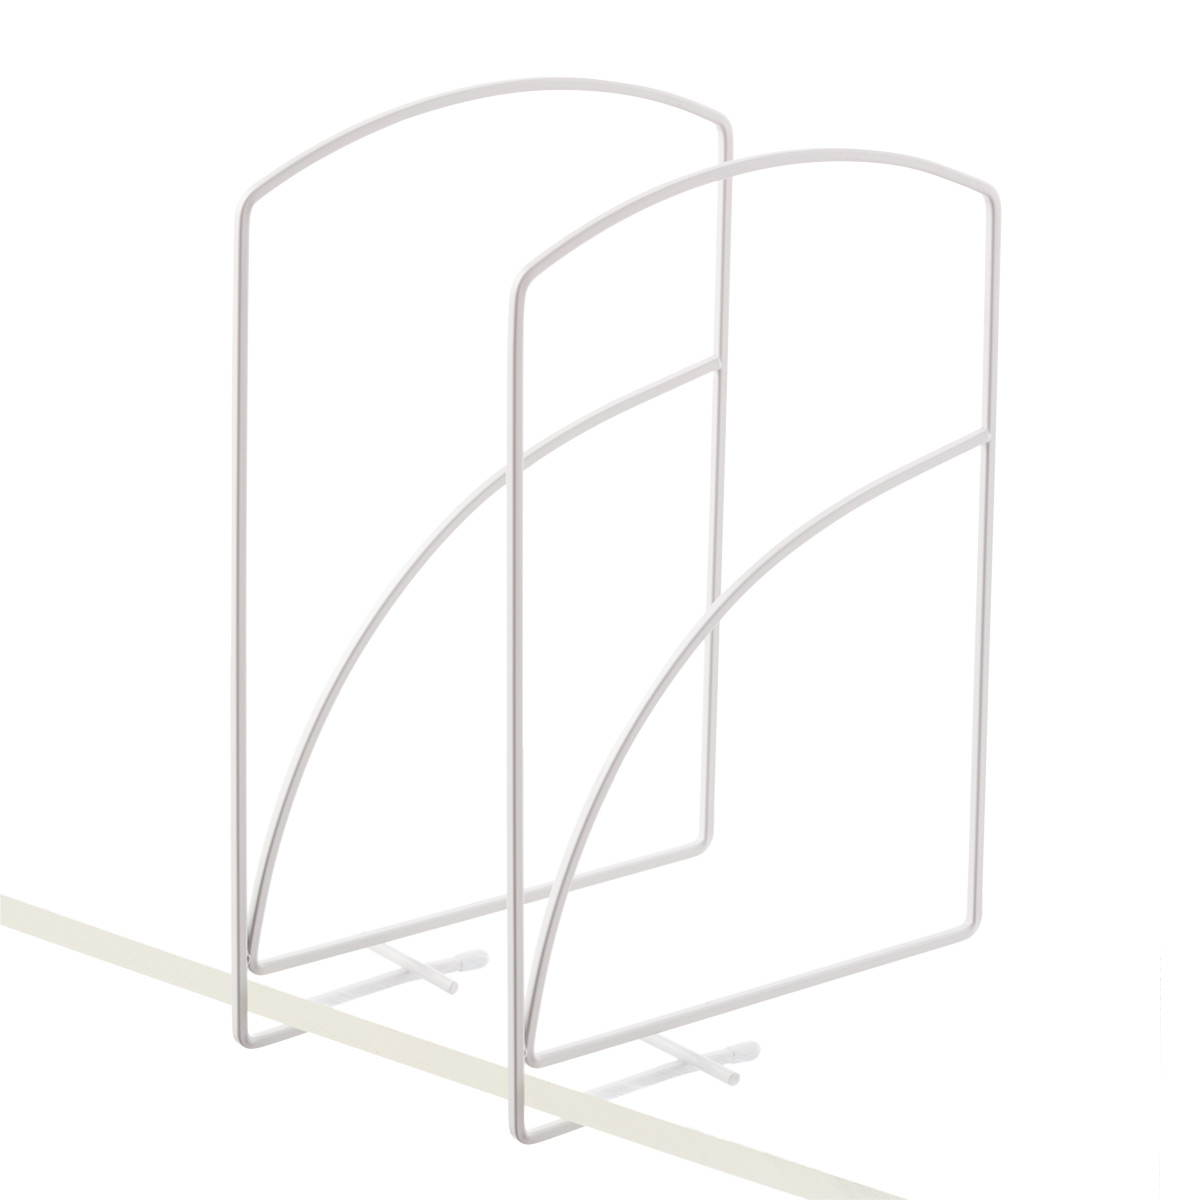 Lynk Tall Solid Shelf Dividers